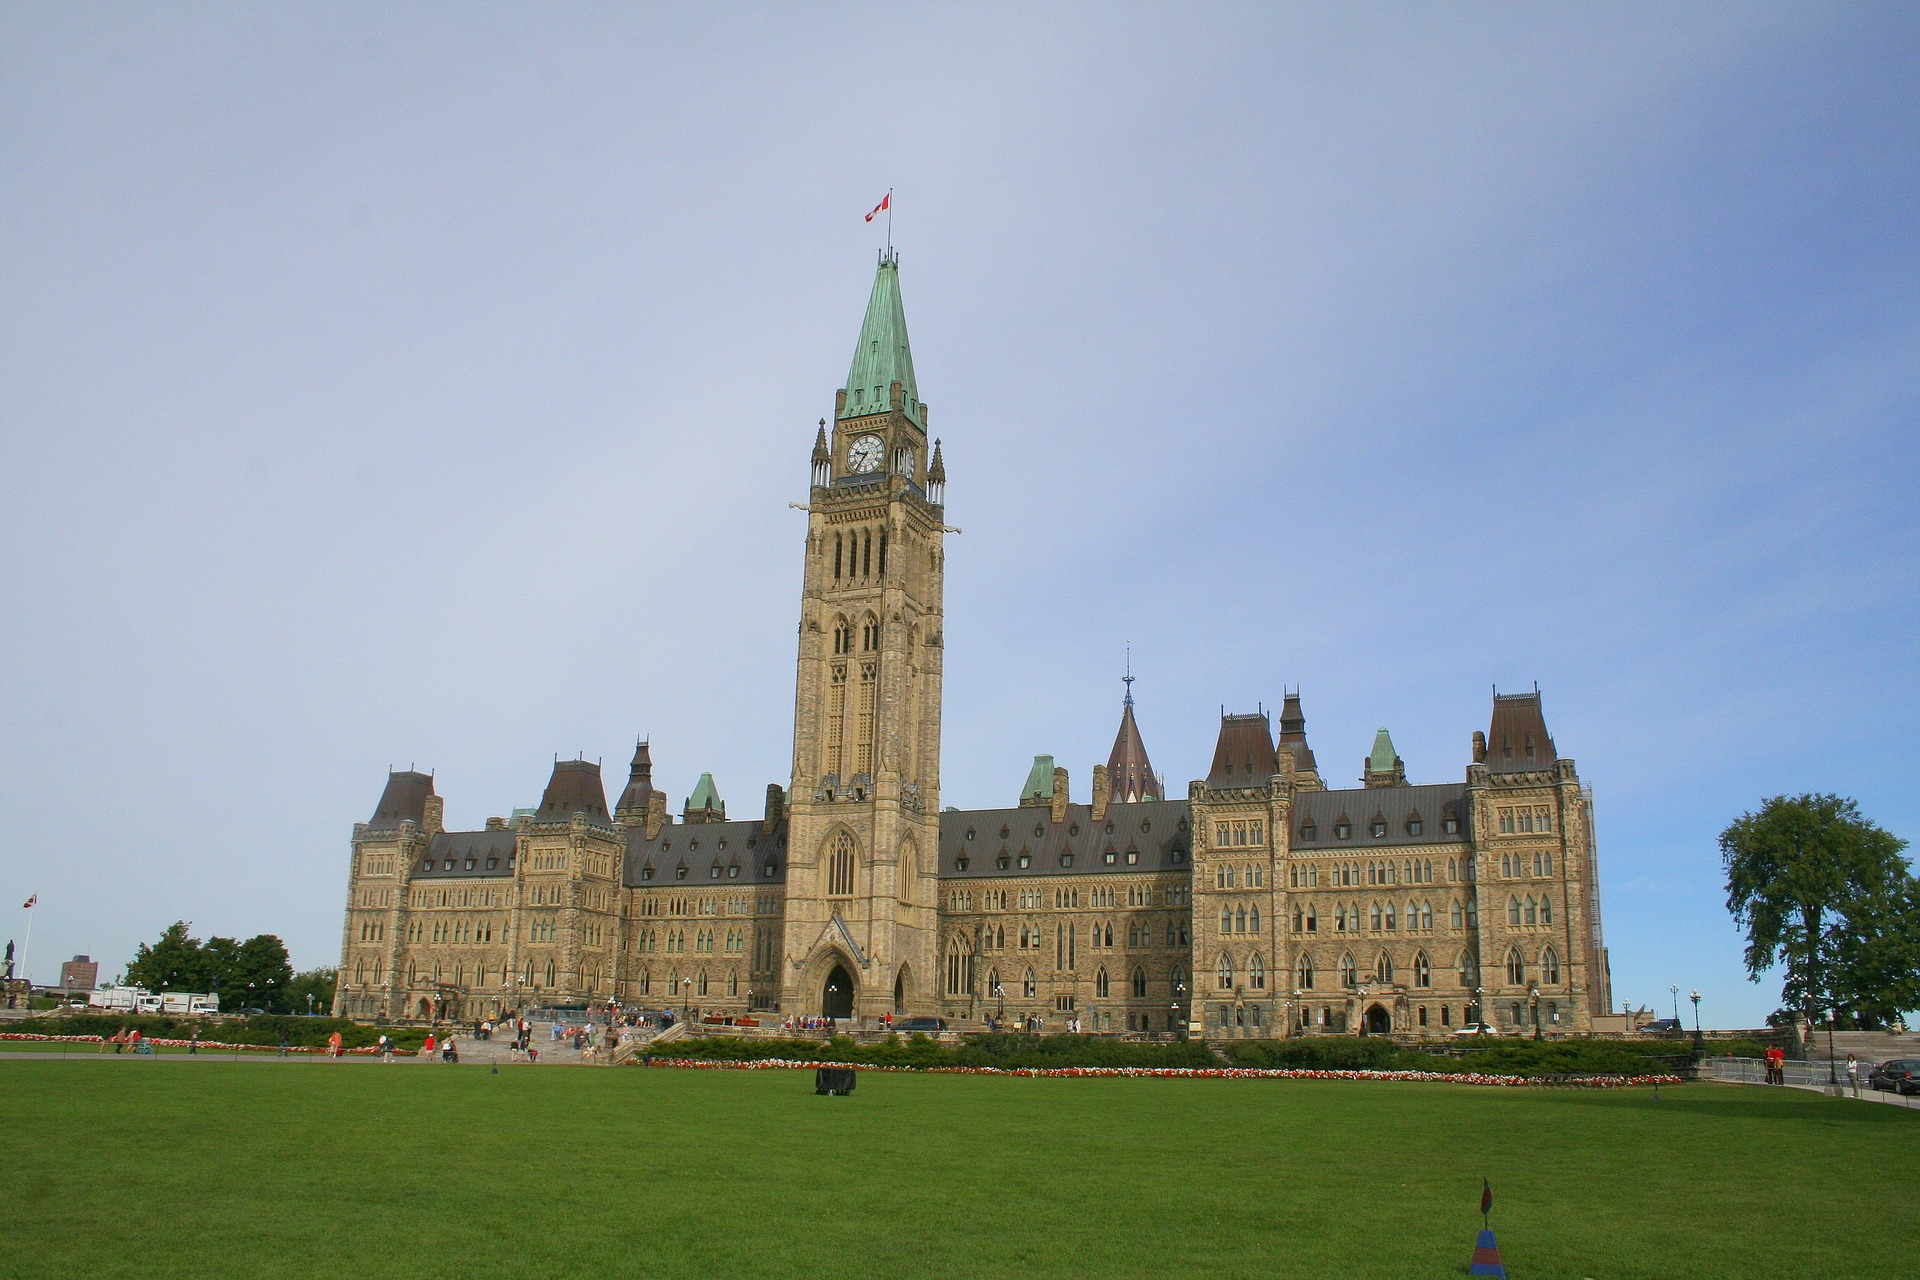 Canadian deficit to hit 254 bln Dollars this year: minister